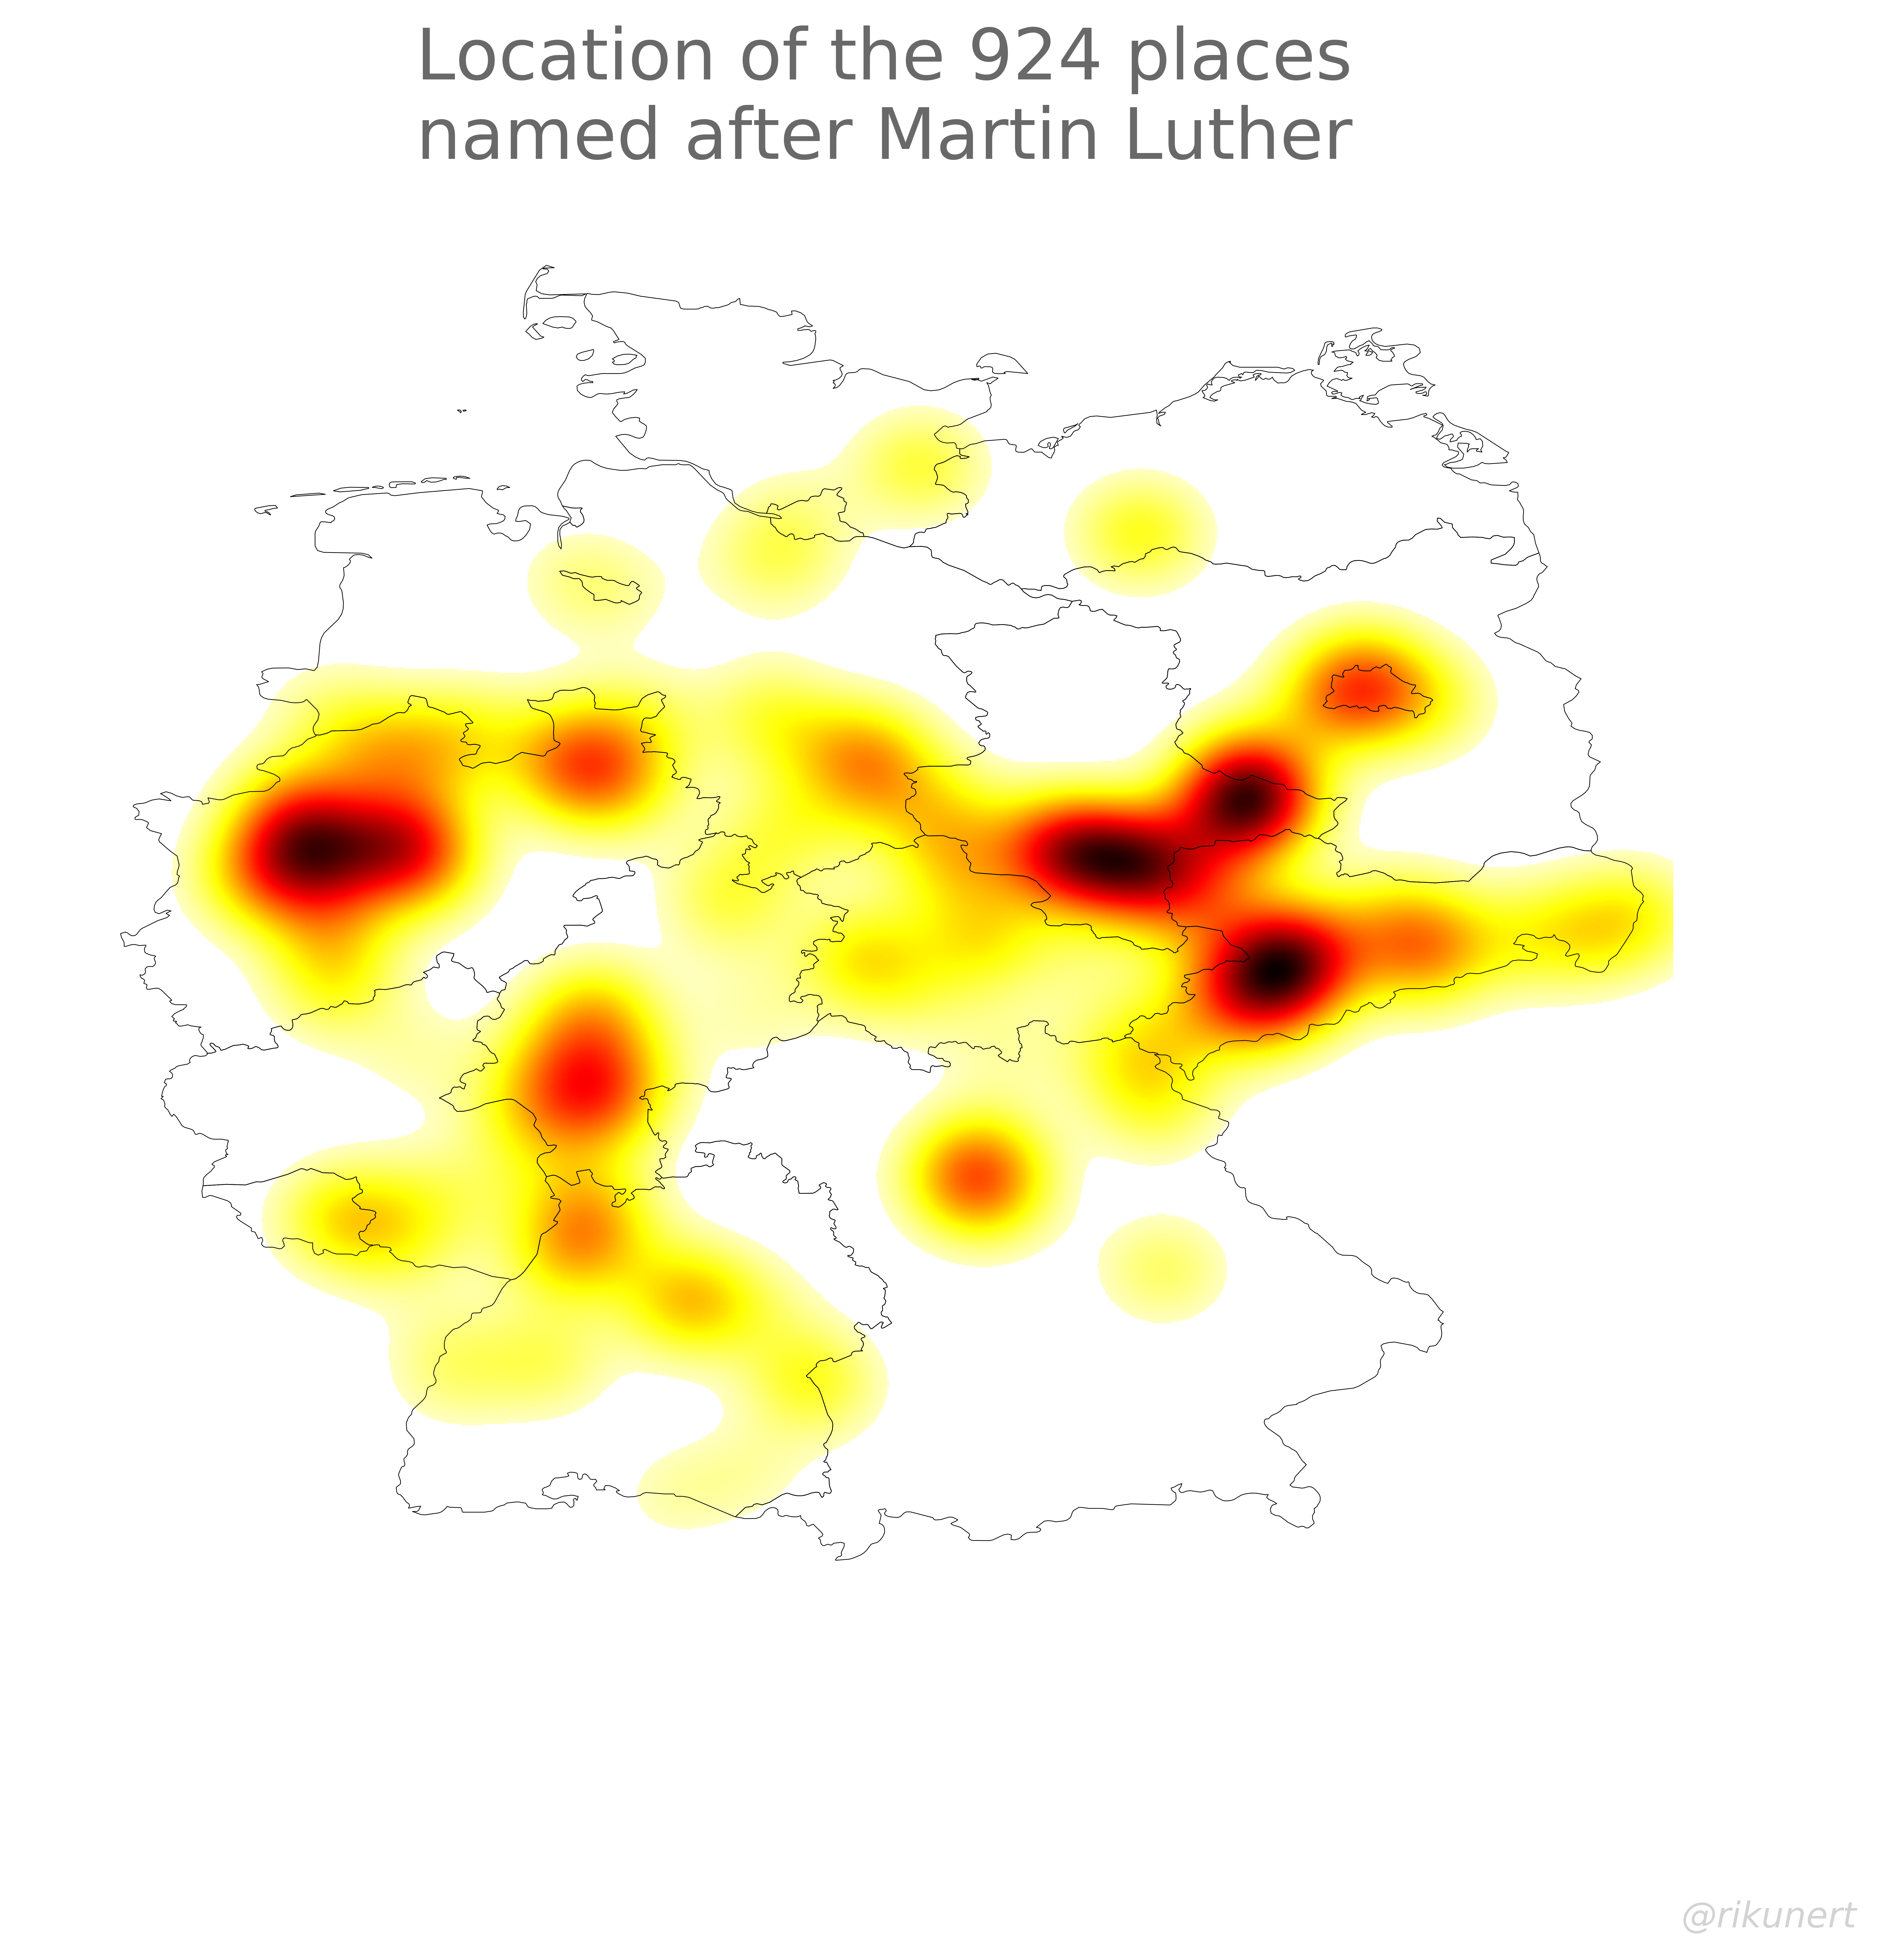 Martin Luther place names heat map